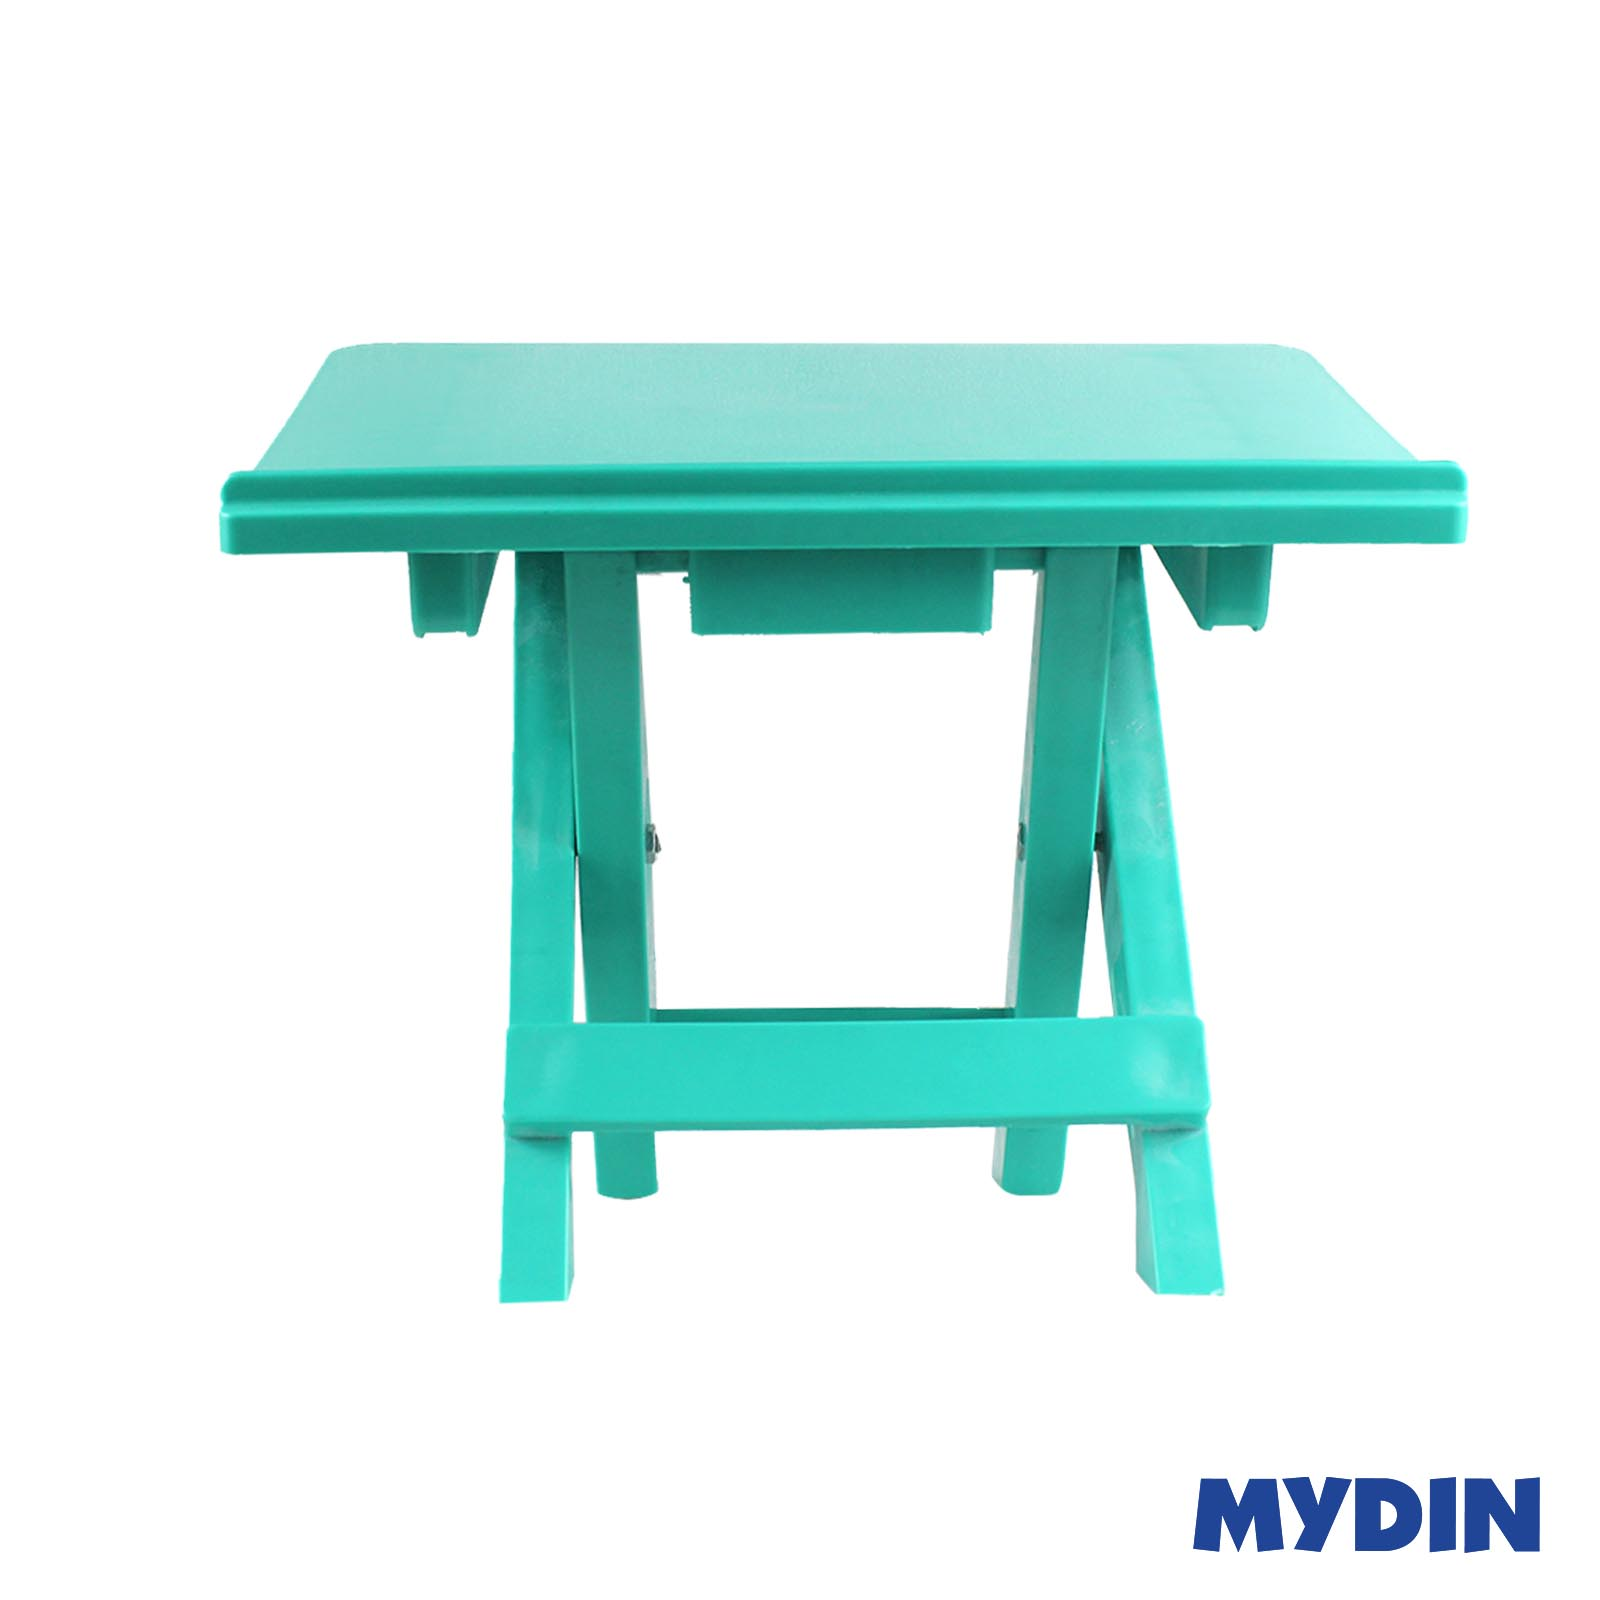 "MYDIN Green Reading Table Rehal Plastic (8.5"" x 12.5"")"